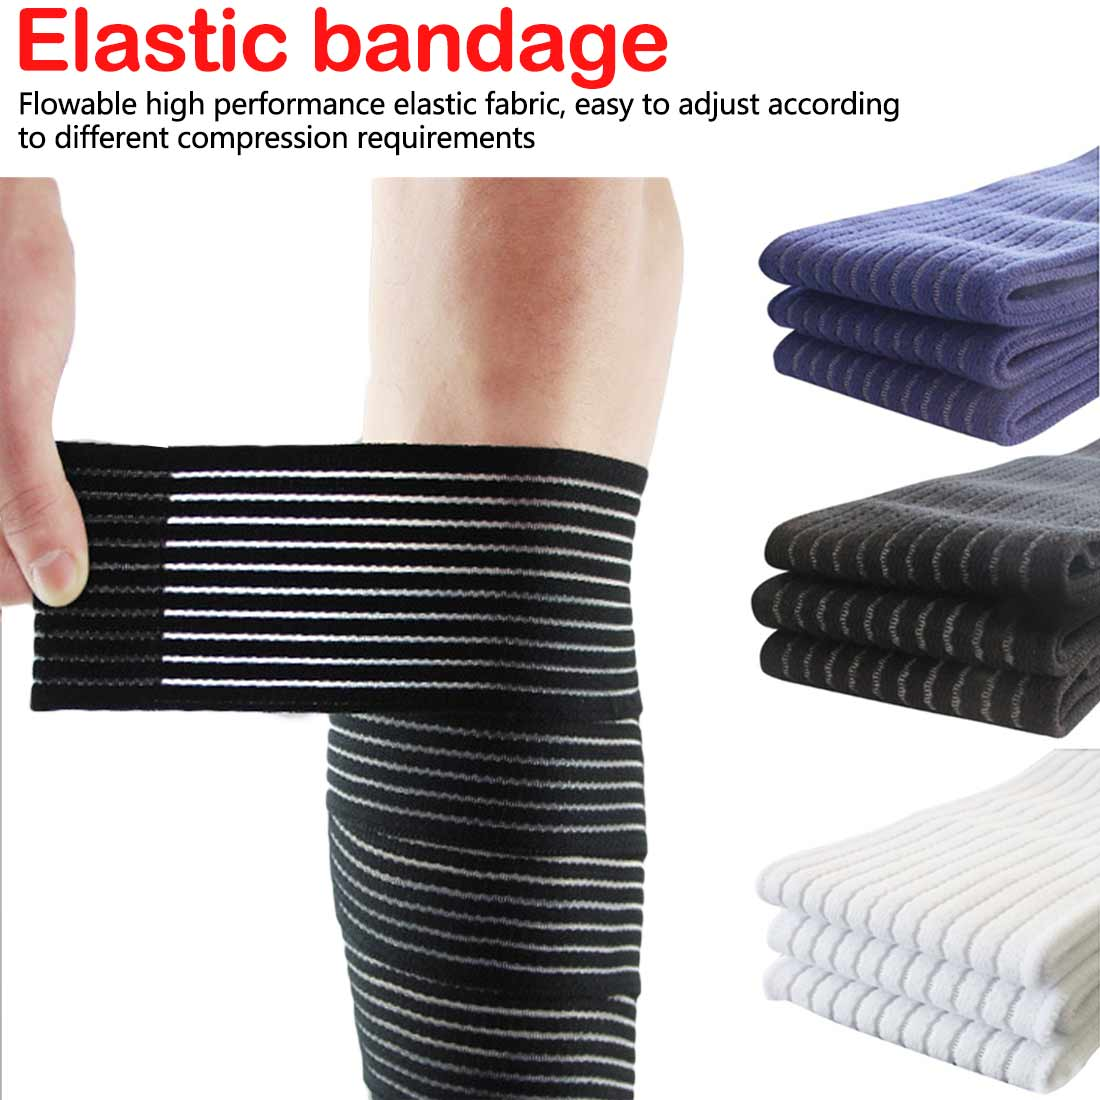 1PCS Elastic Bandage Tape Protector For Ankle Leg Wrist Wrap Protective Gear Sport Knee Support Strap Shin Guard Compression